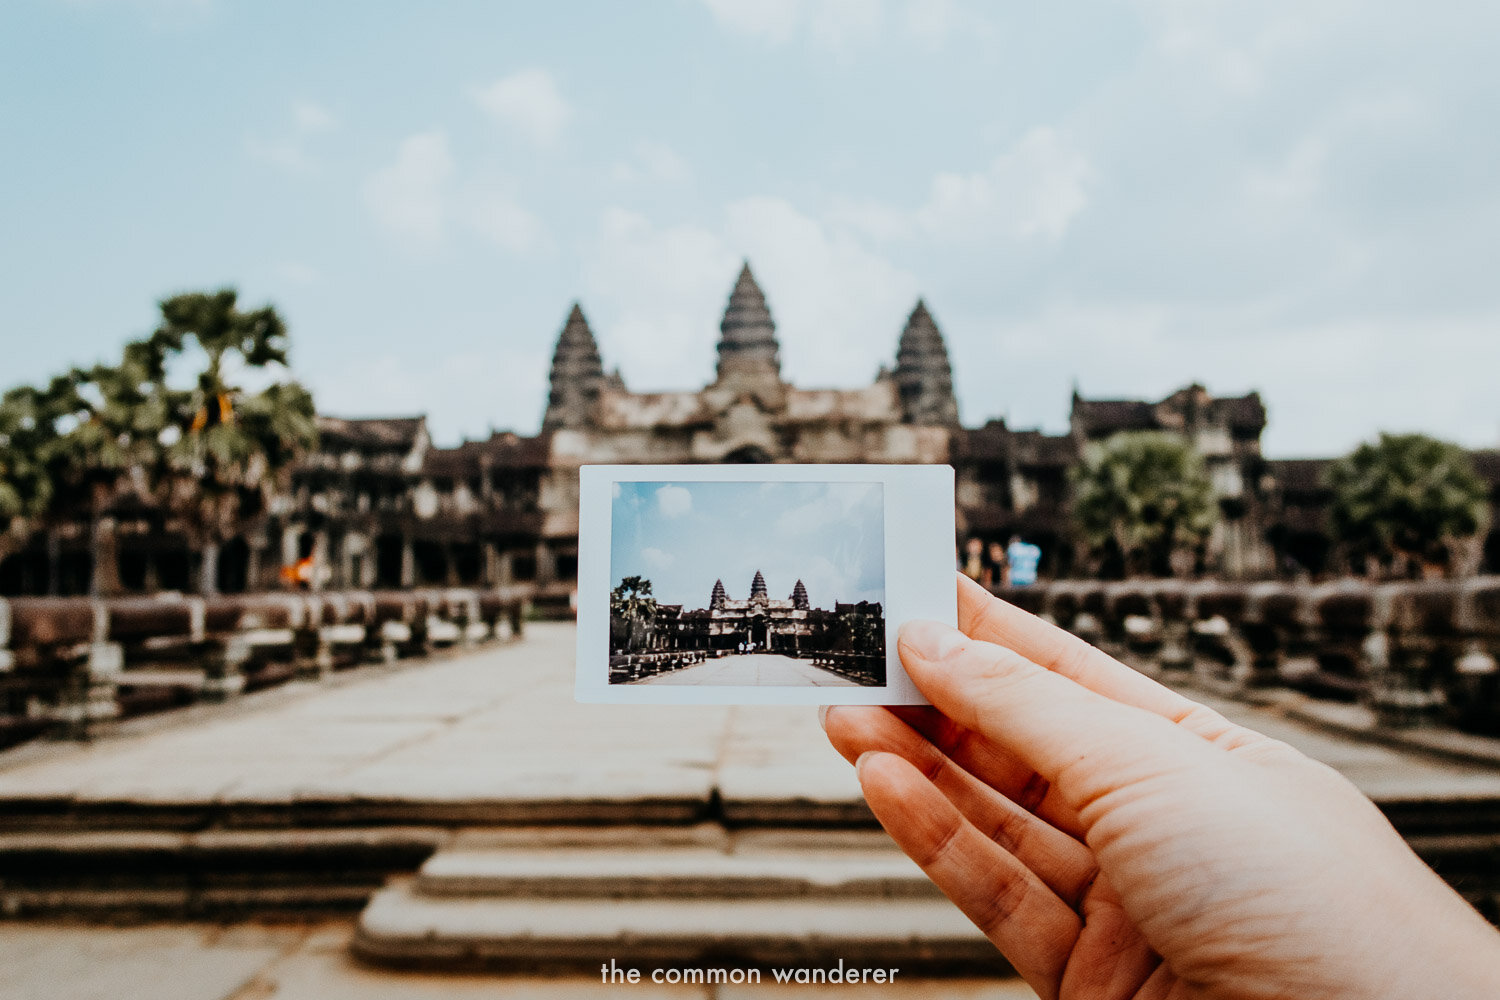 A guide to Angkor Wat temples, Cambodia